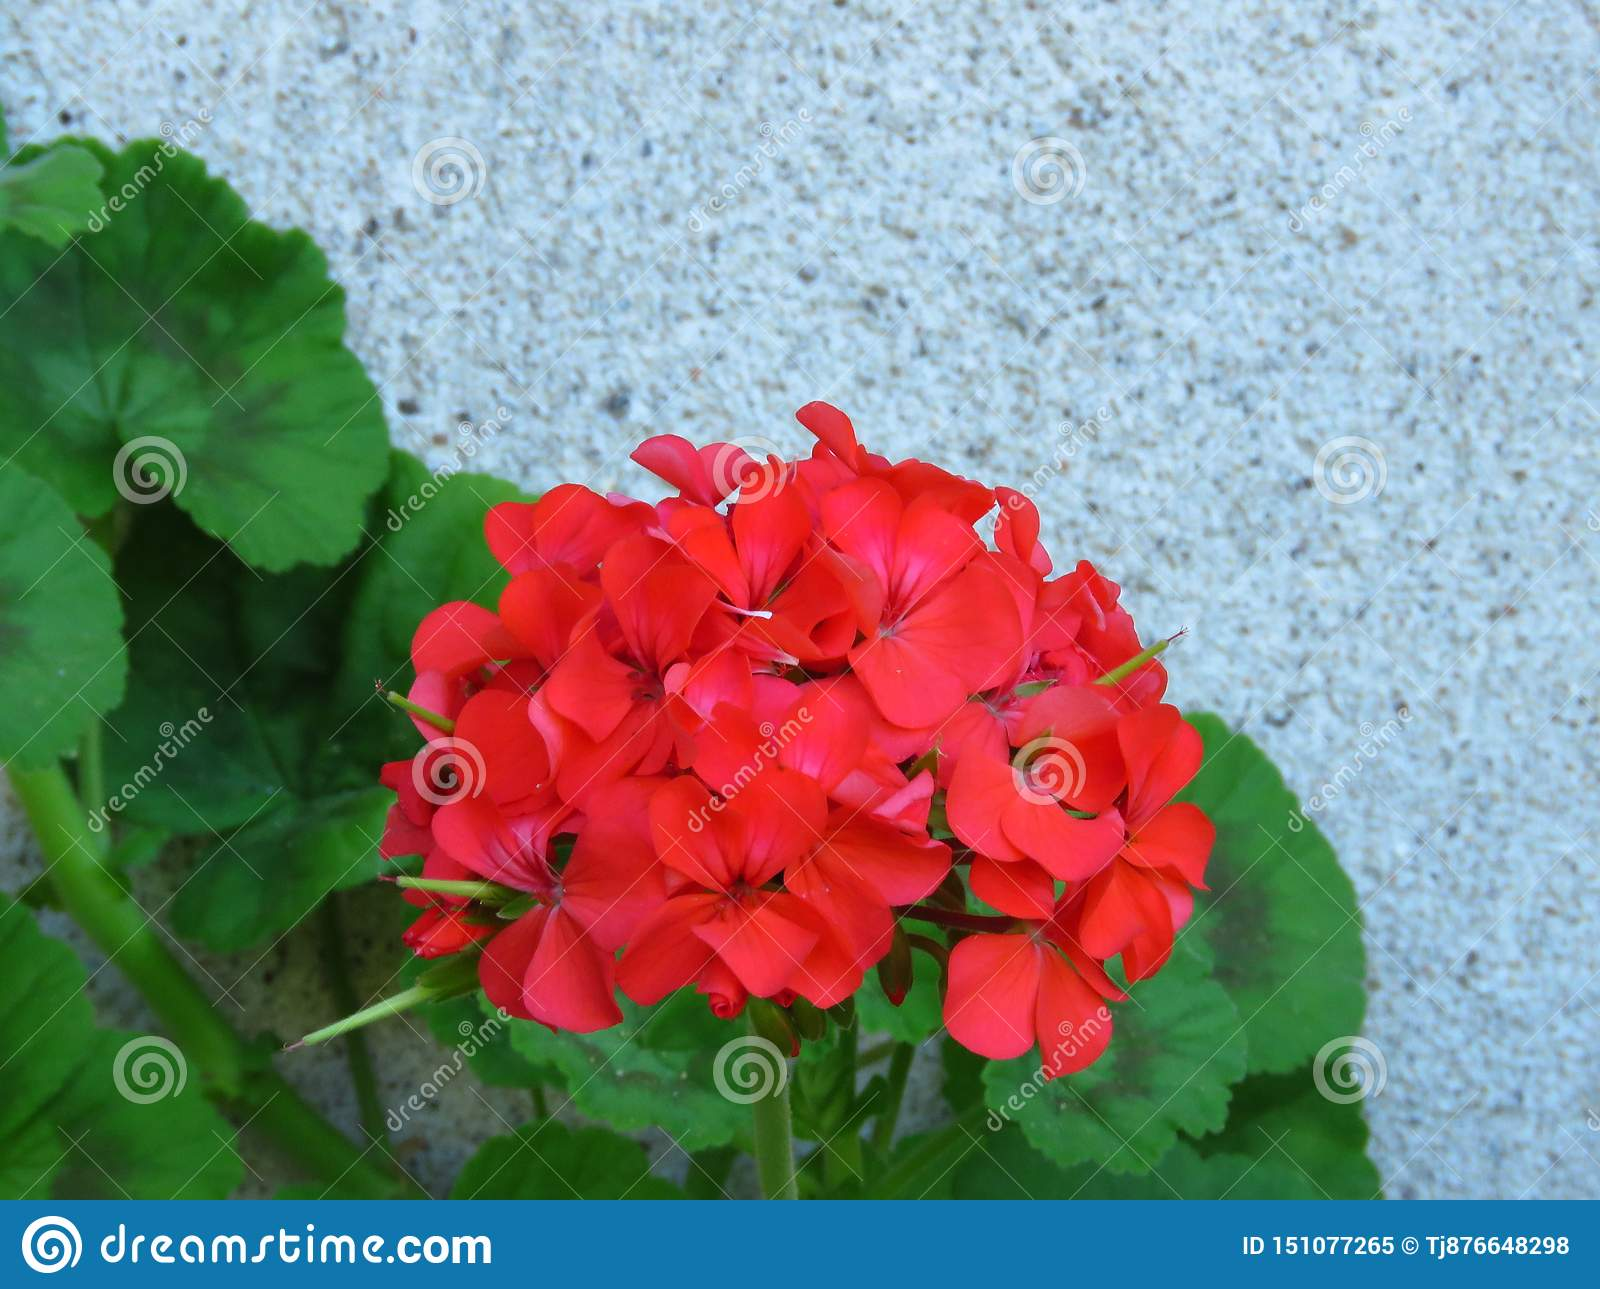 Geranium `Happy Thoughts Red` Pelargonium with red blooms and vibrant green leaves on white wall background.